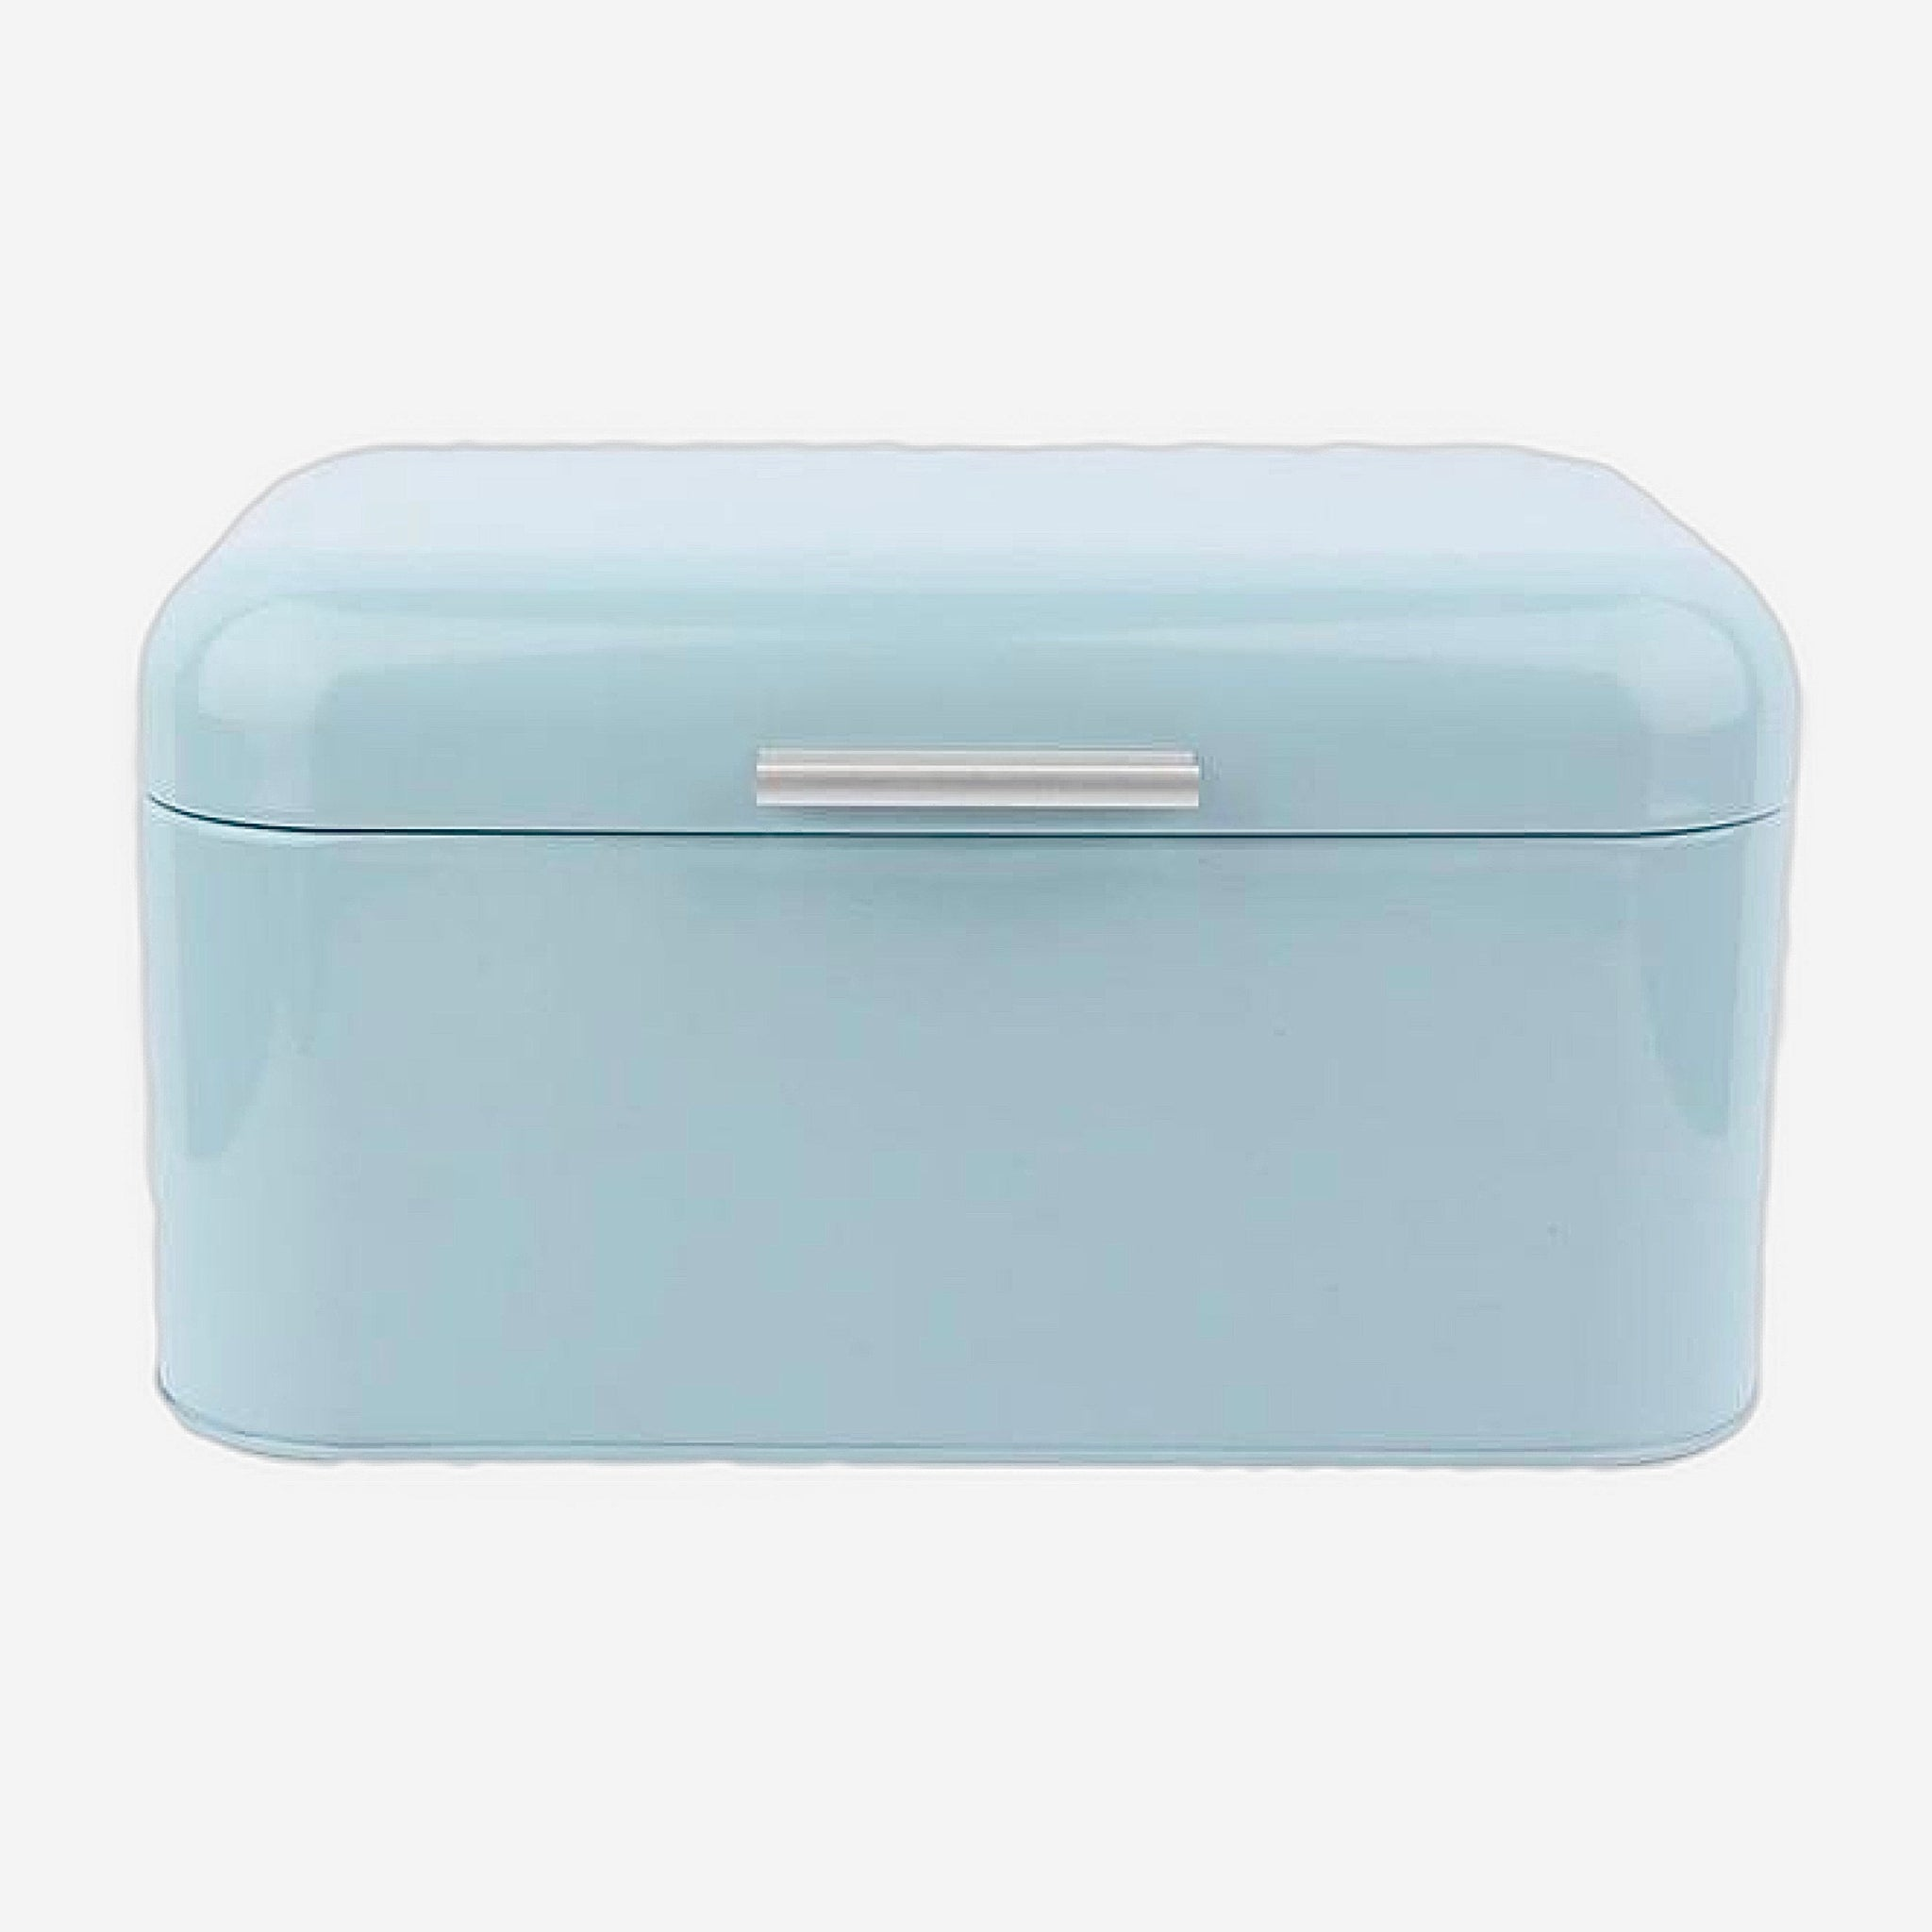 Retro Light Blue Metal Bread Box Bread Storage Organizer Boxes Solid Color Large Capacity Bin Kitchen Storage Container Trend